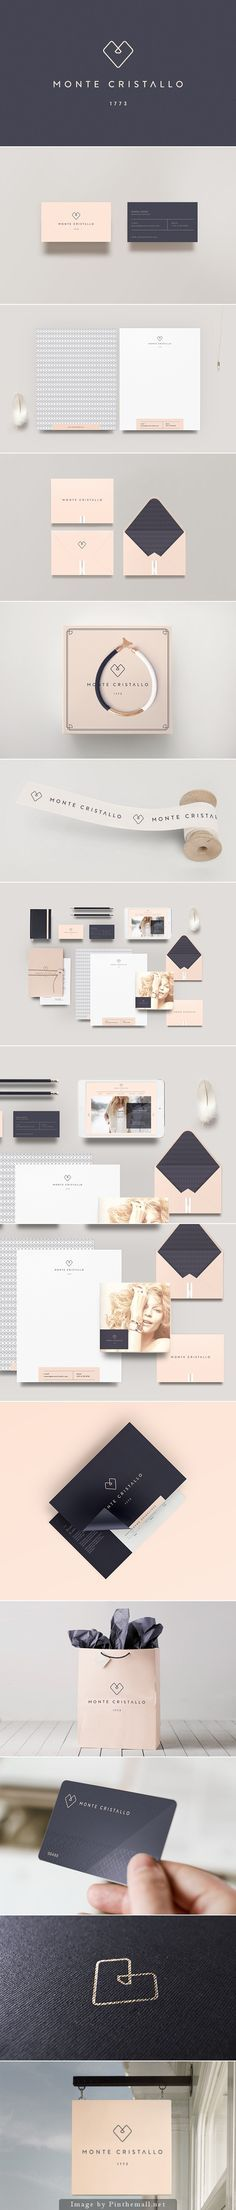 Monte Cristallo jewelry packaging. Beautiful and simple.